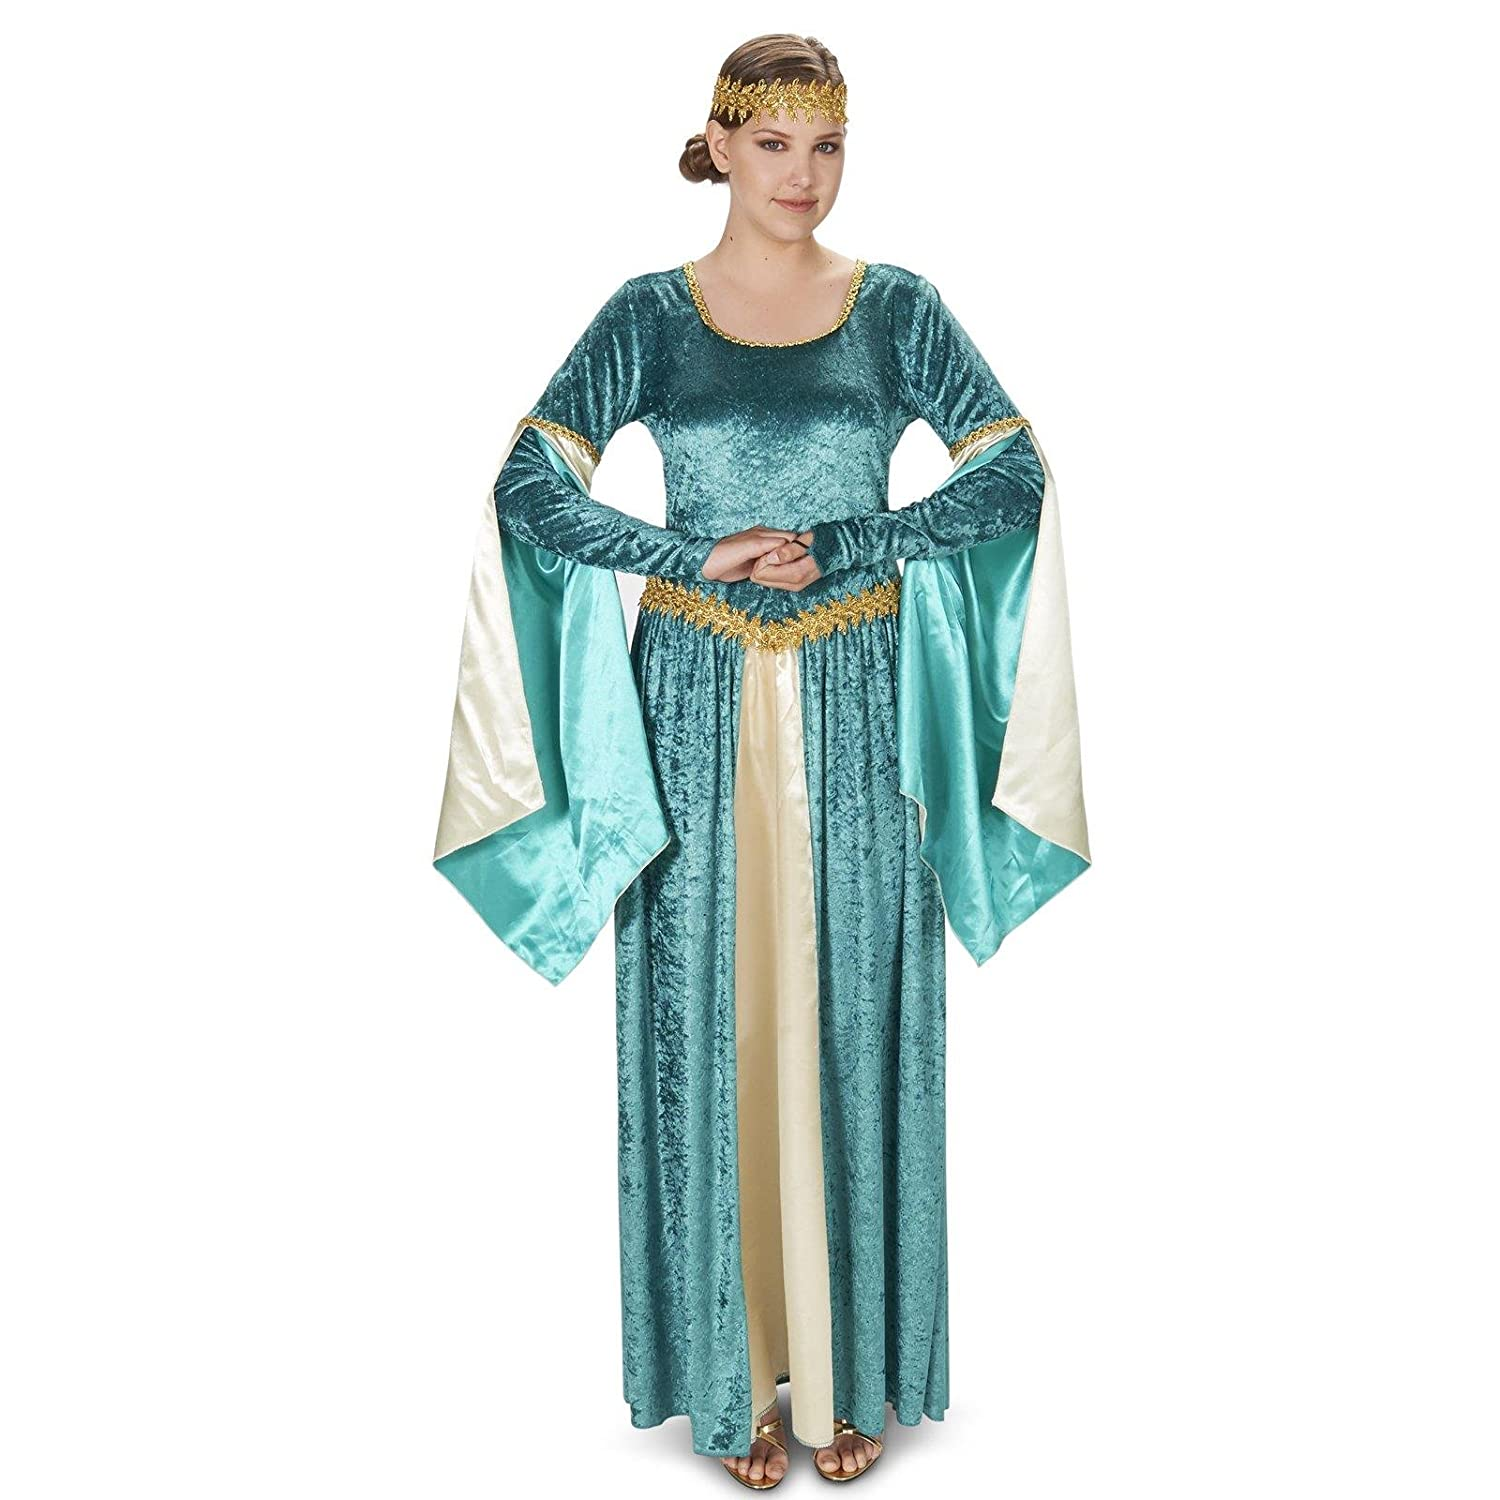 Renaissance Teal Velvet Dress Adult Costume M